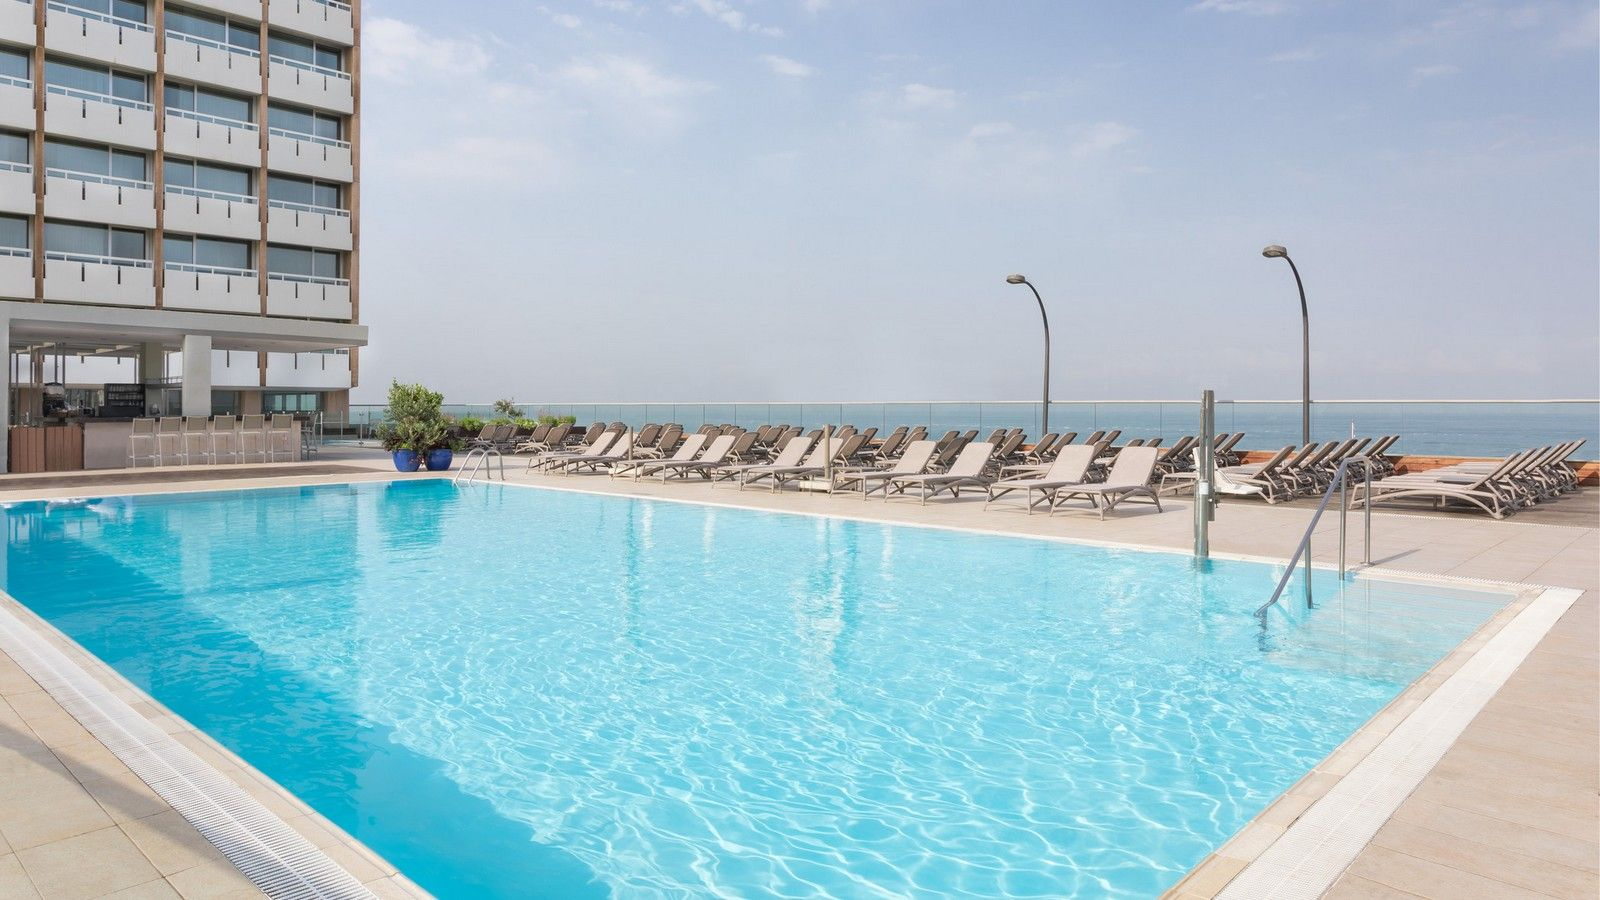 Outdoor pool at Sheraton Tel Aviv